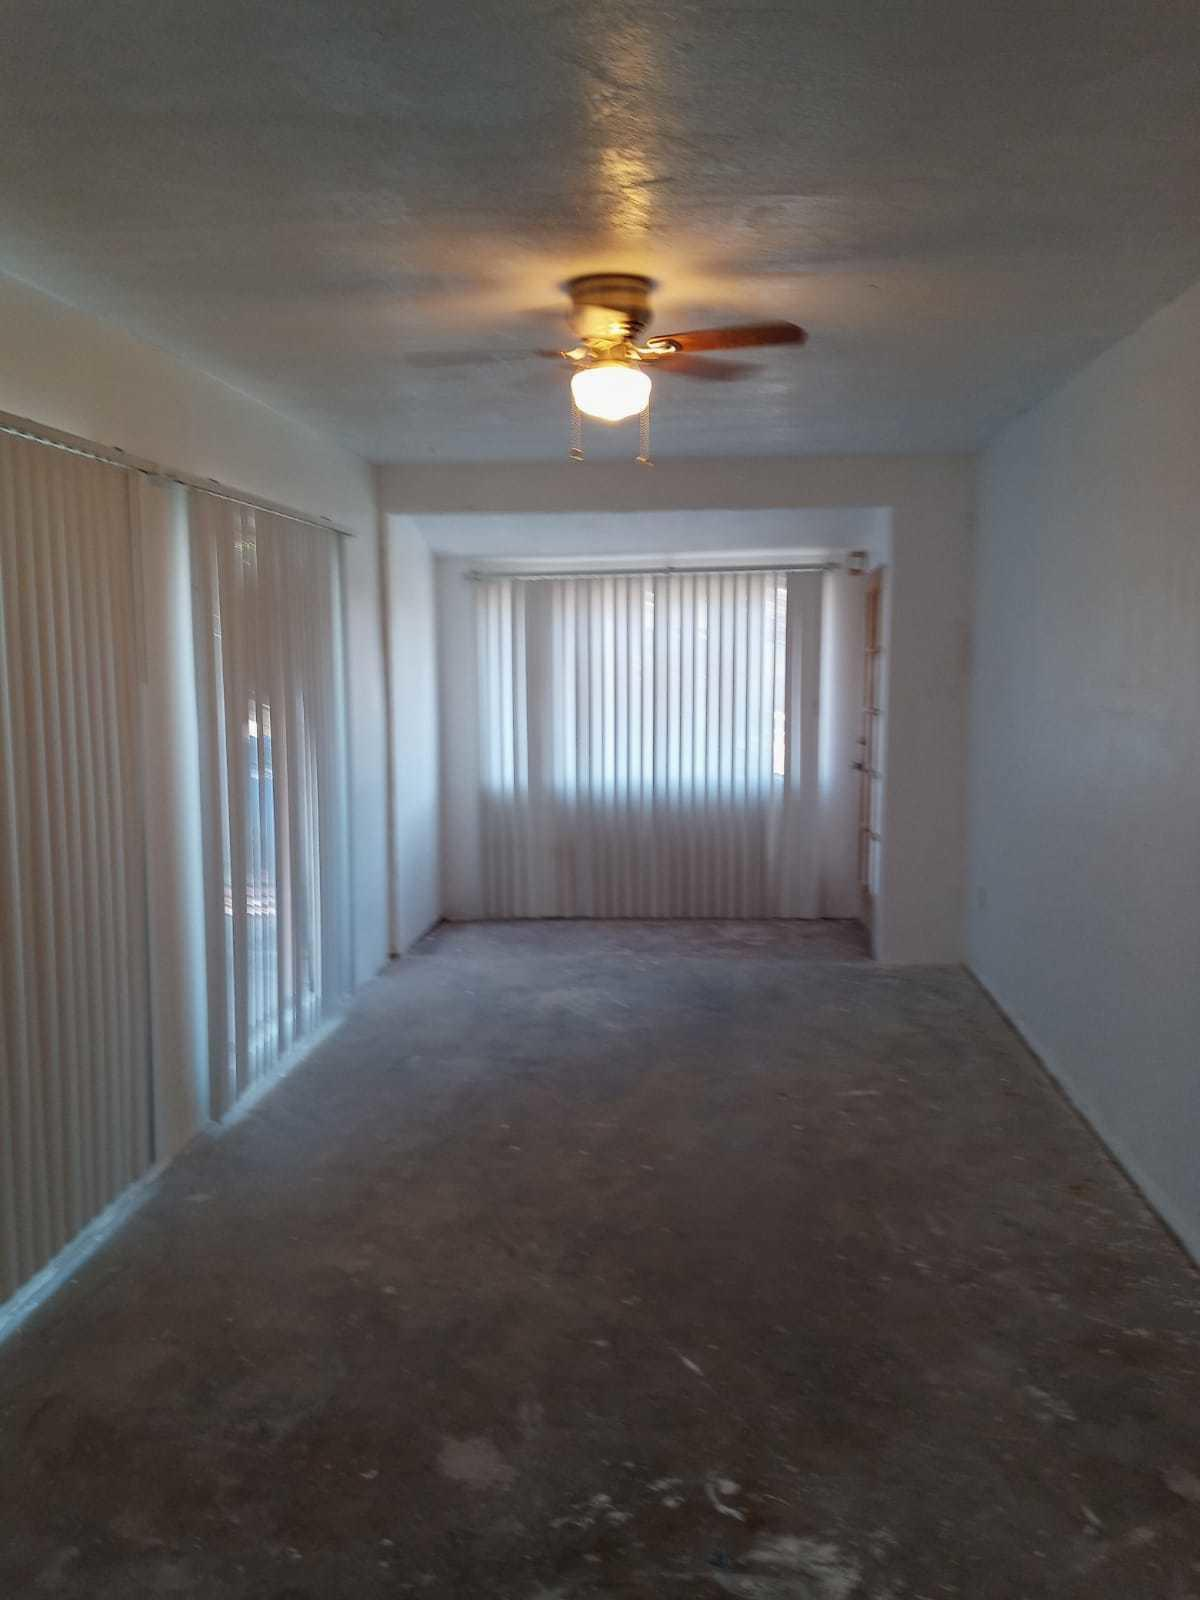 4508 ALTA VISTA Road, Phoenix, Arizona 85042, 3 Bedrooms Bedrooms, ,2 BathroomsBathrooms,Residential,For Sale,ALTA VISTA,6230087